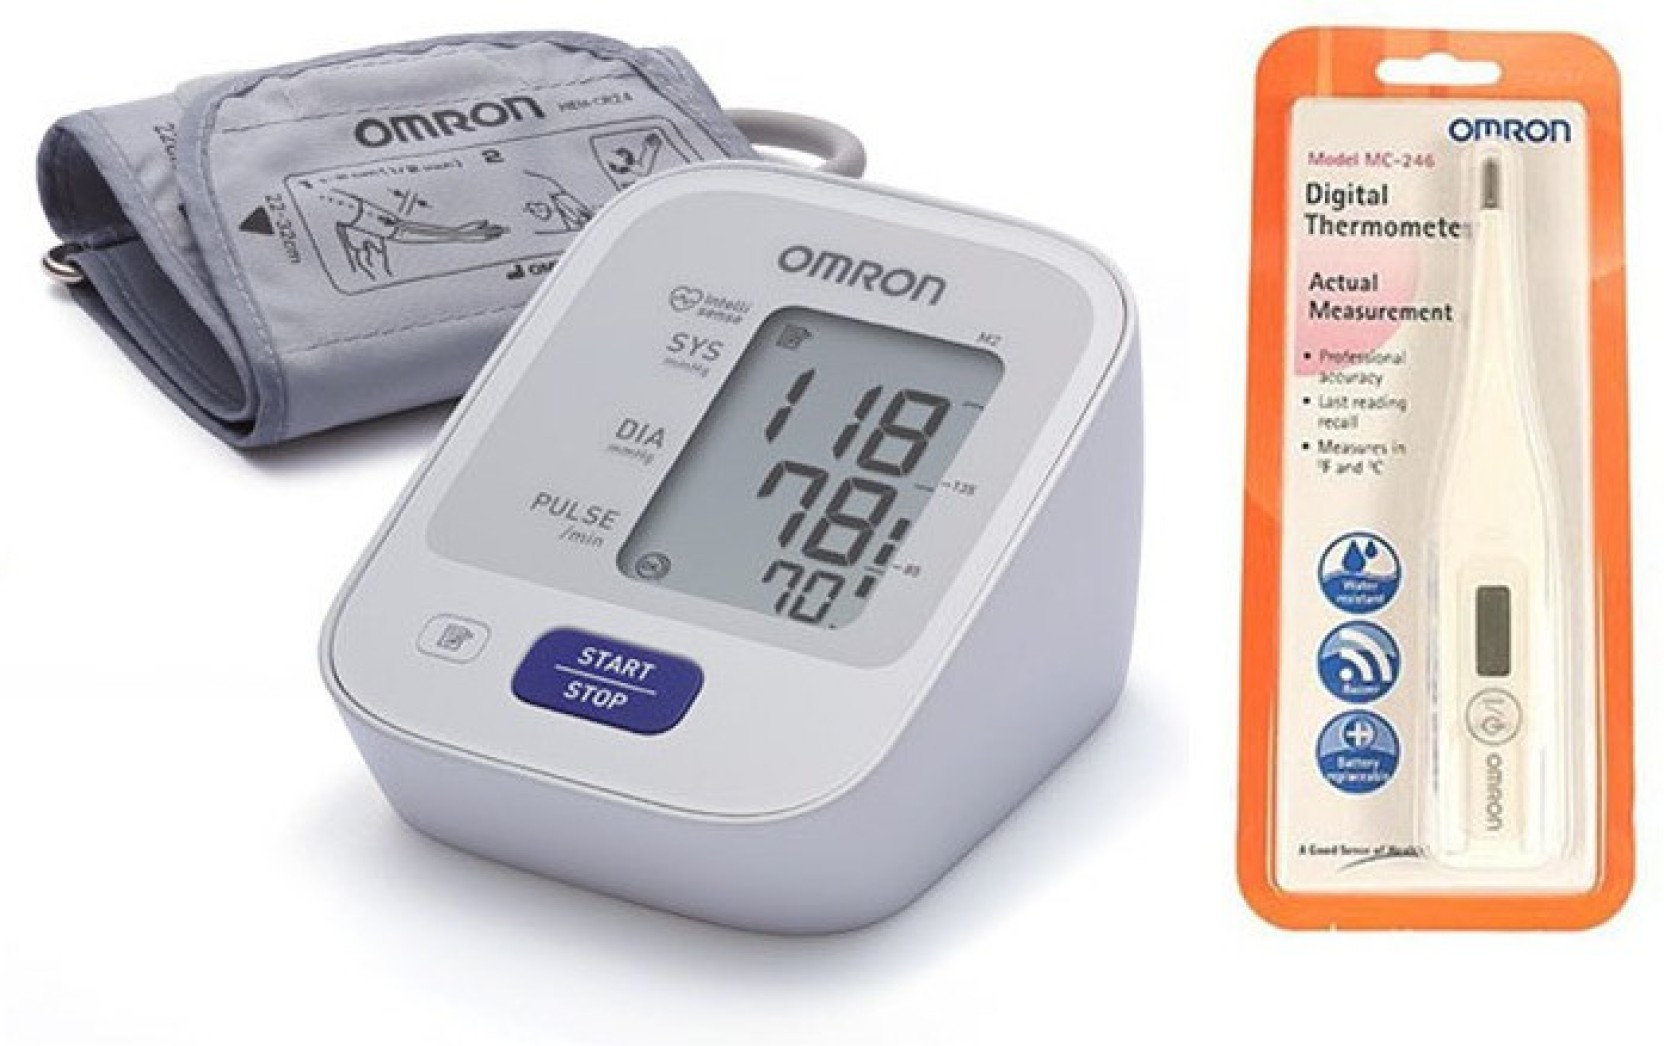 Omron Hem 7120 With 5 Years Warranty Upper Arm Bp Monitor And Mc 246 Thermometer Digital Add To Cart